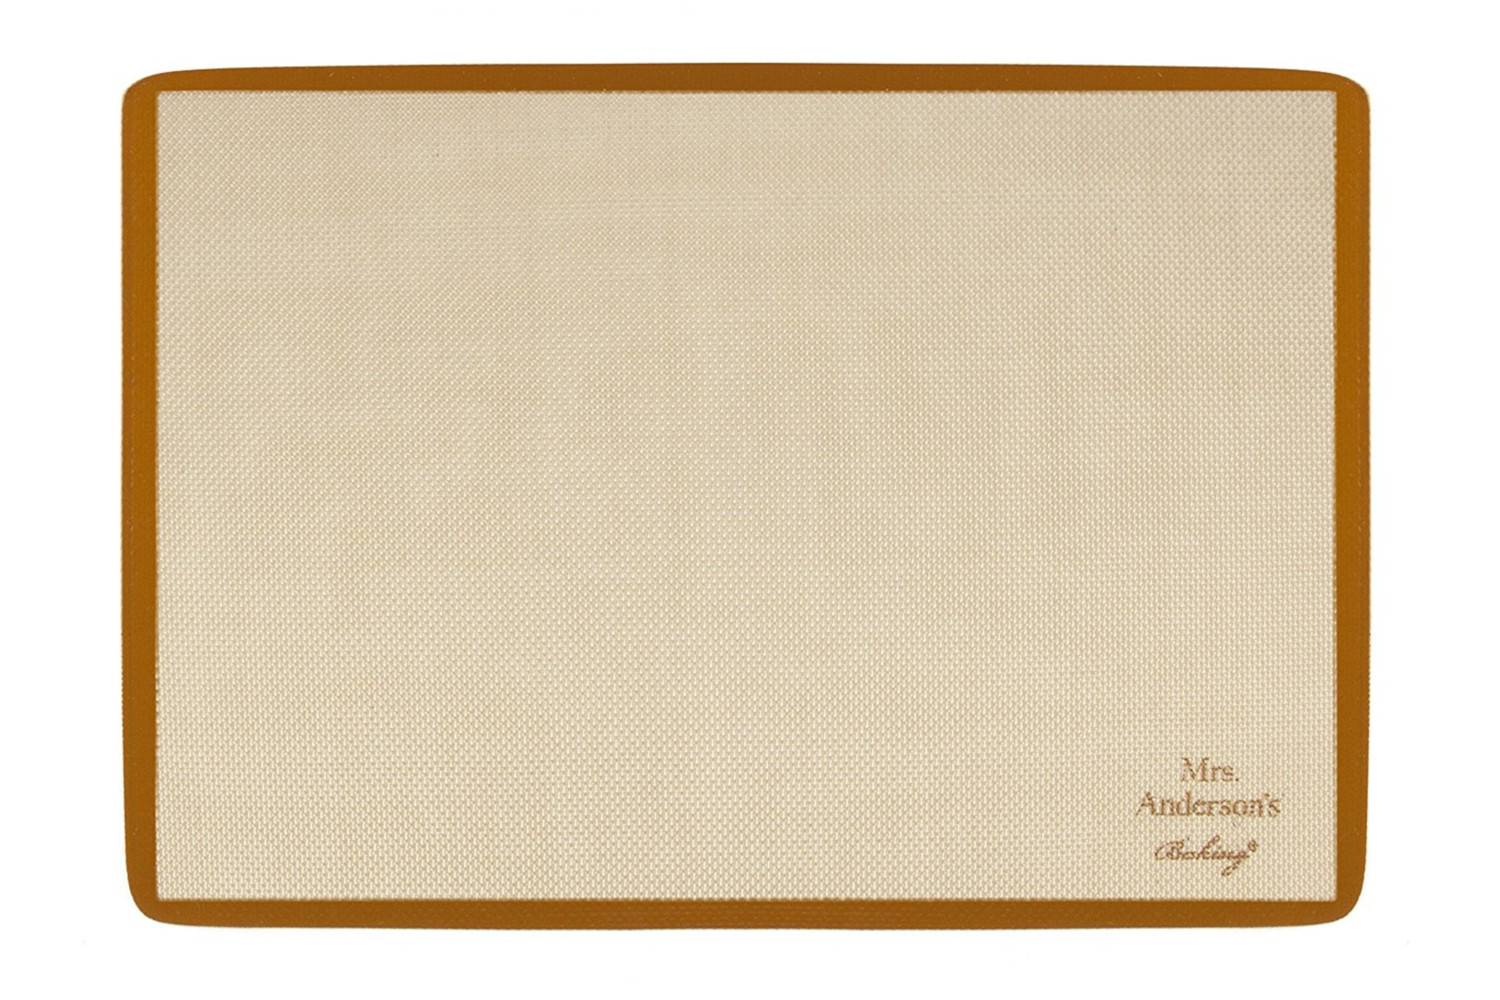 Mrs. Anderson's Silicone Bread Crisping Mat